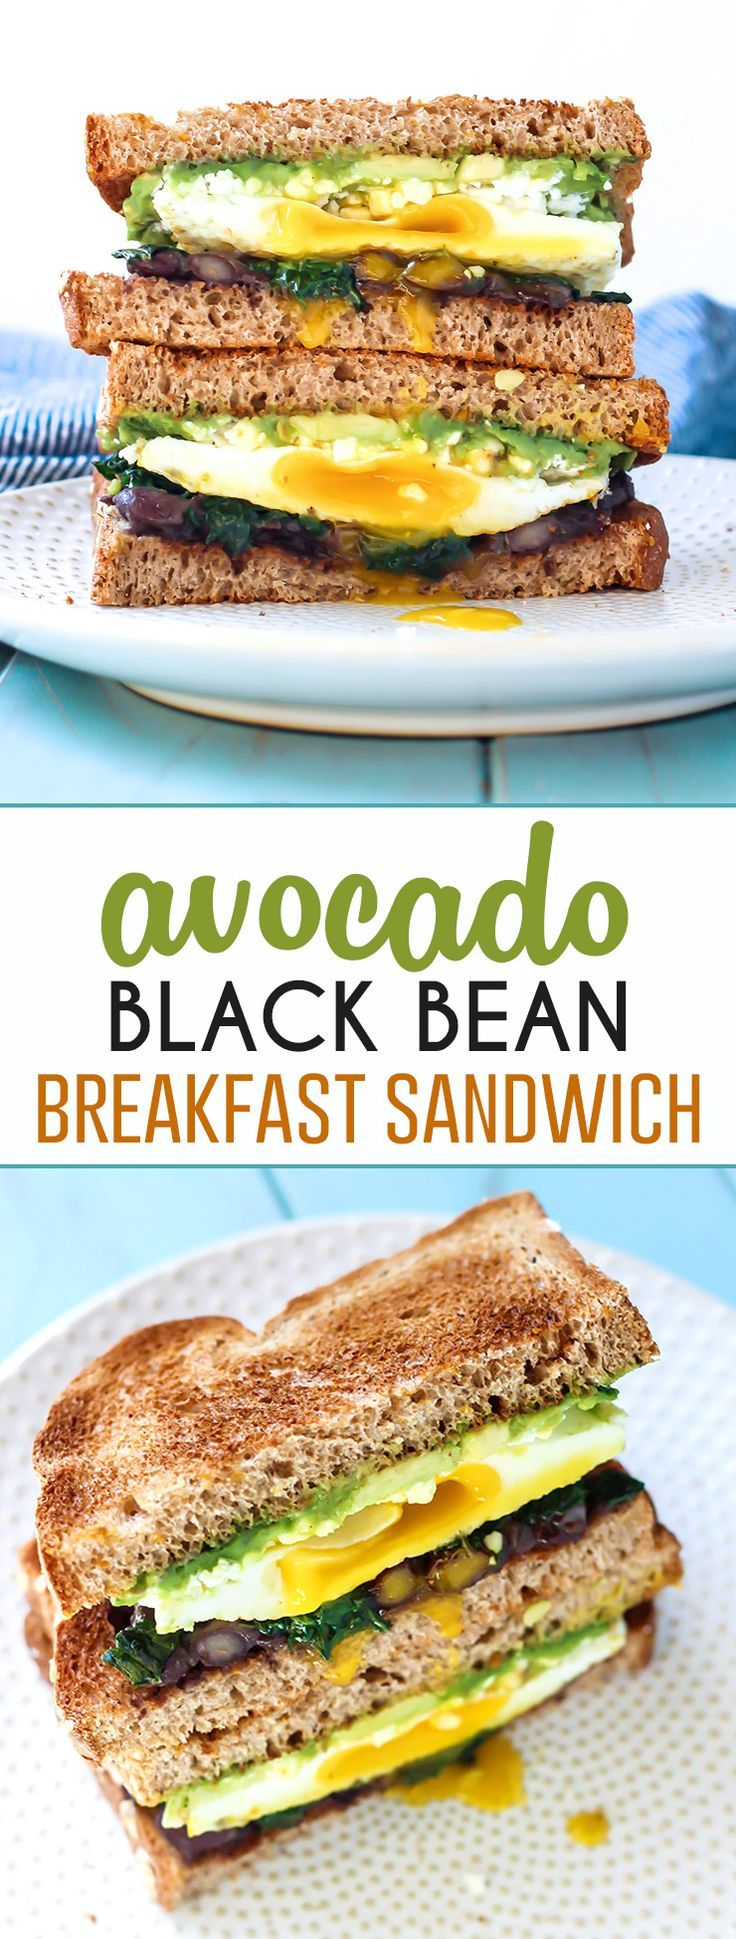 This Avocado Black Bean Breakfast Sandwich will be your new favorite. The perfect way to start your morning with healthy fats, good carbs and plenty of protein. Use your favorite GF bread or a wrap.